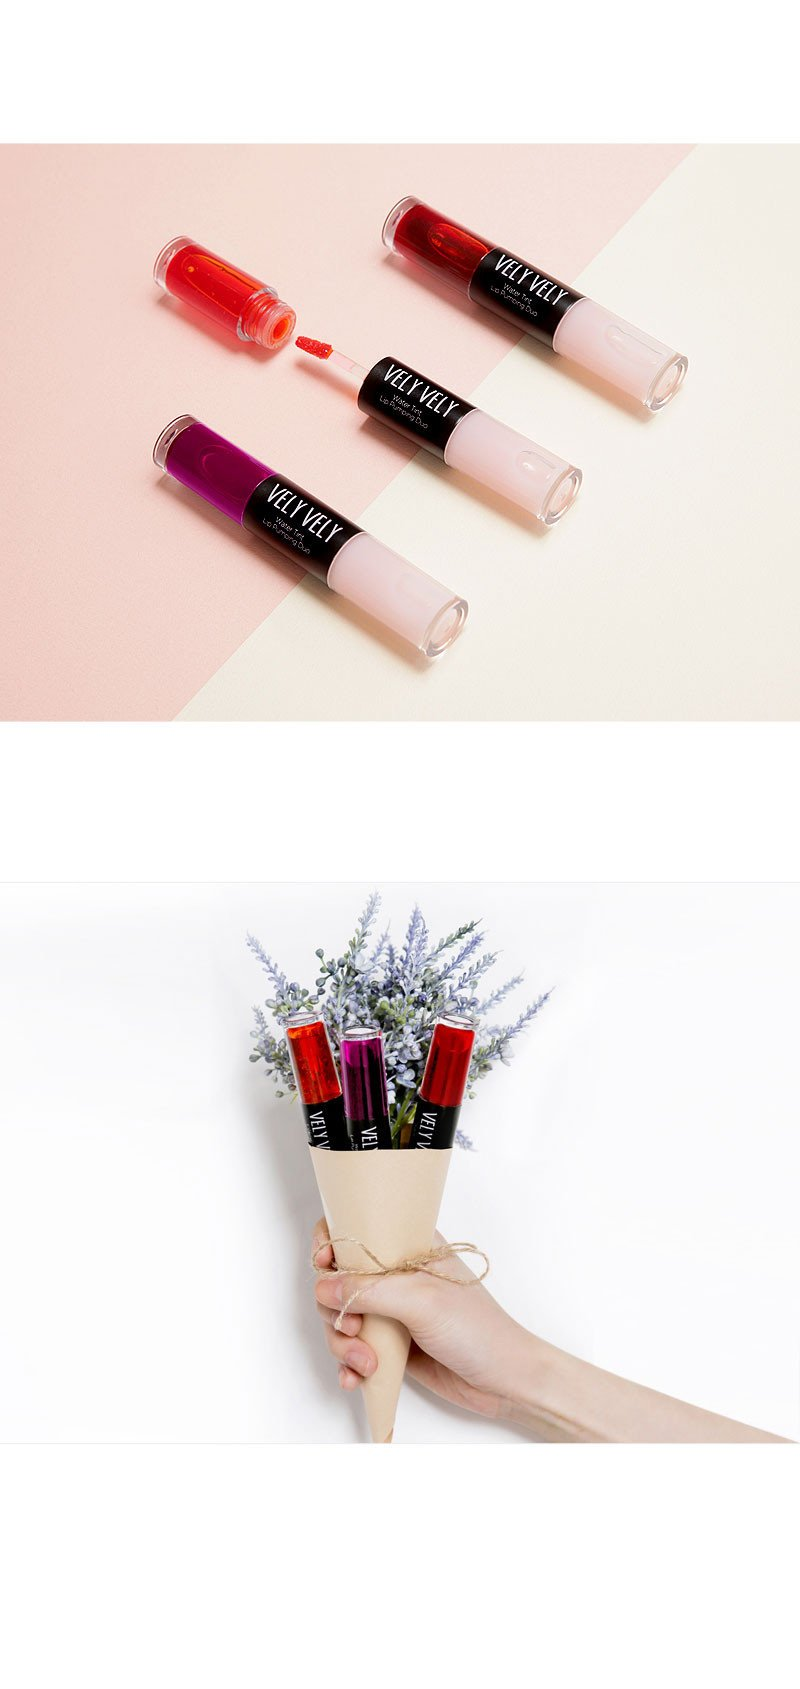 Flatlay of Vely Vely Water Tint Lip Pumping Duo